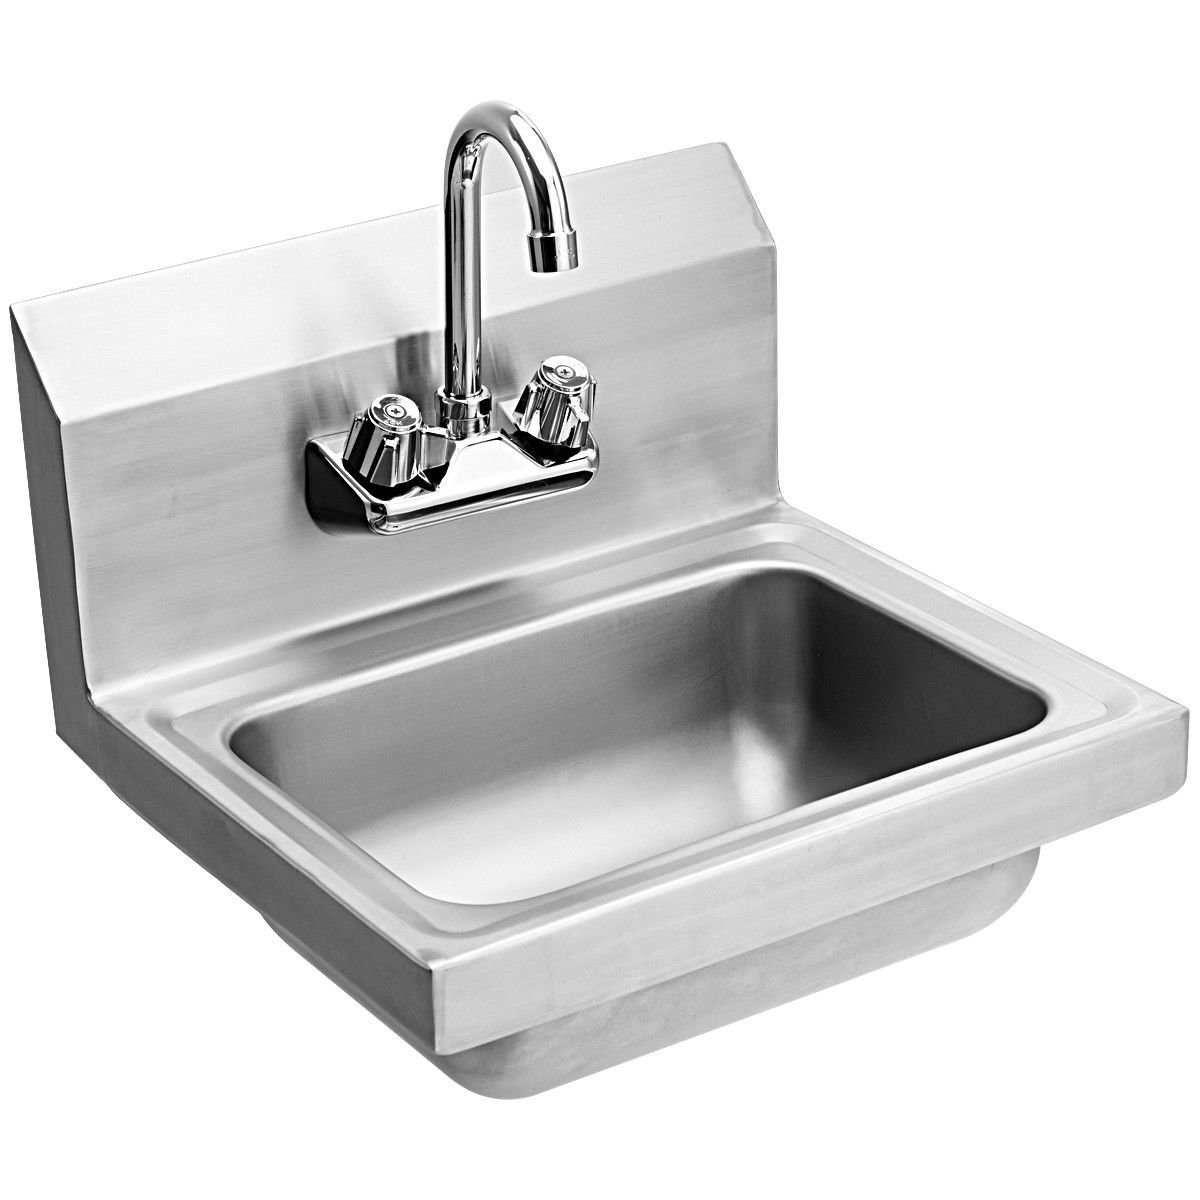 Giantex Commercial Stainless Steel Hand Washing Sink with Wall Mount Faucet Kitchen Heavy Duty Hot & Cold Temperature Water Inlet Washing Basin, Silver by Giantex